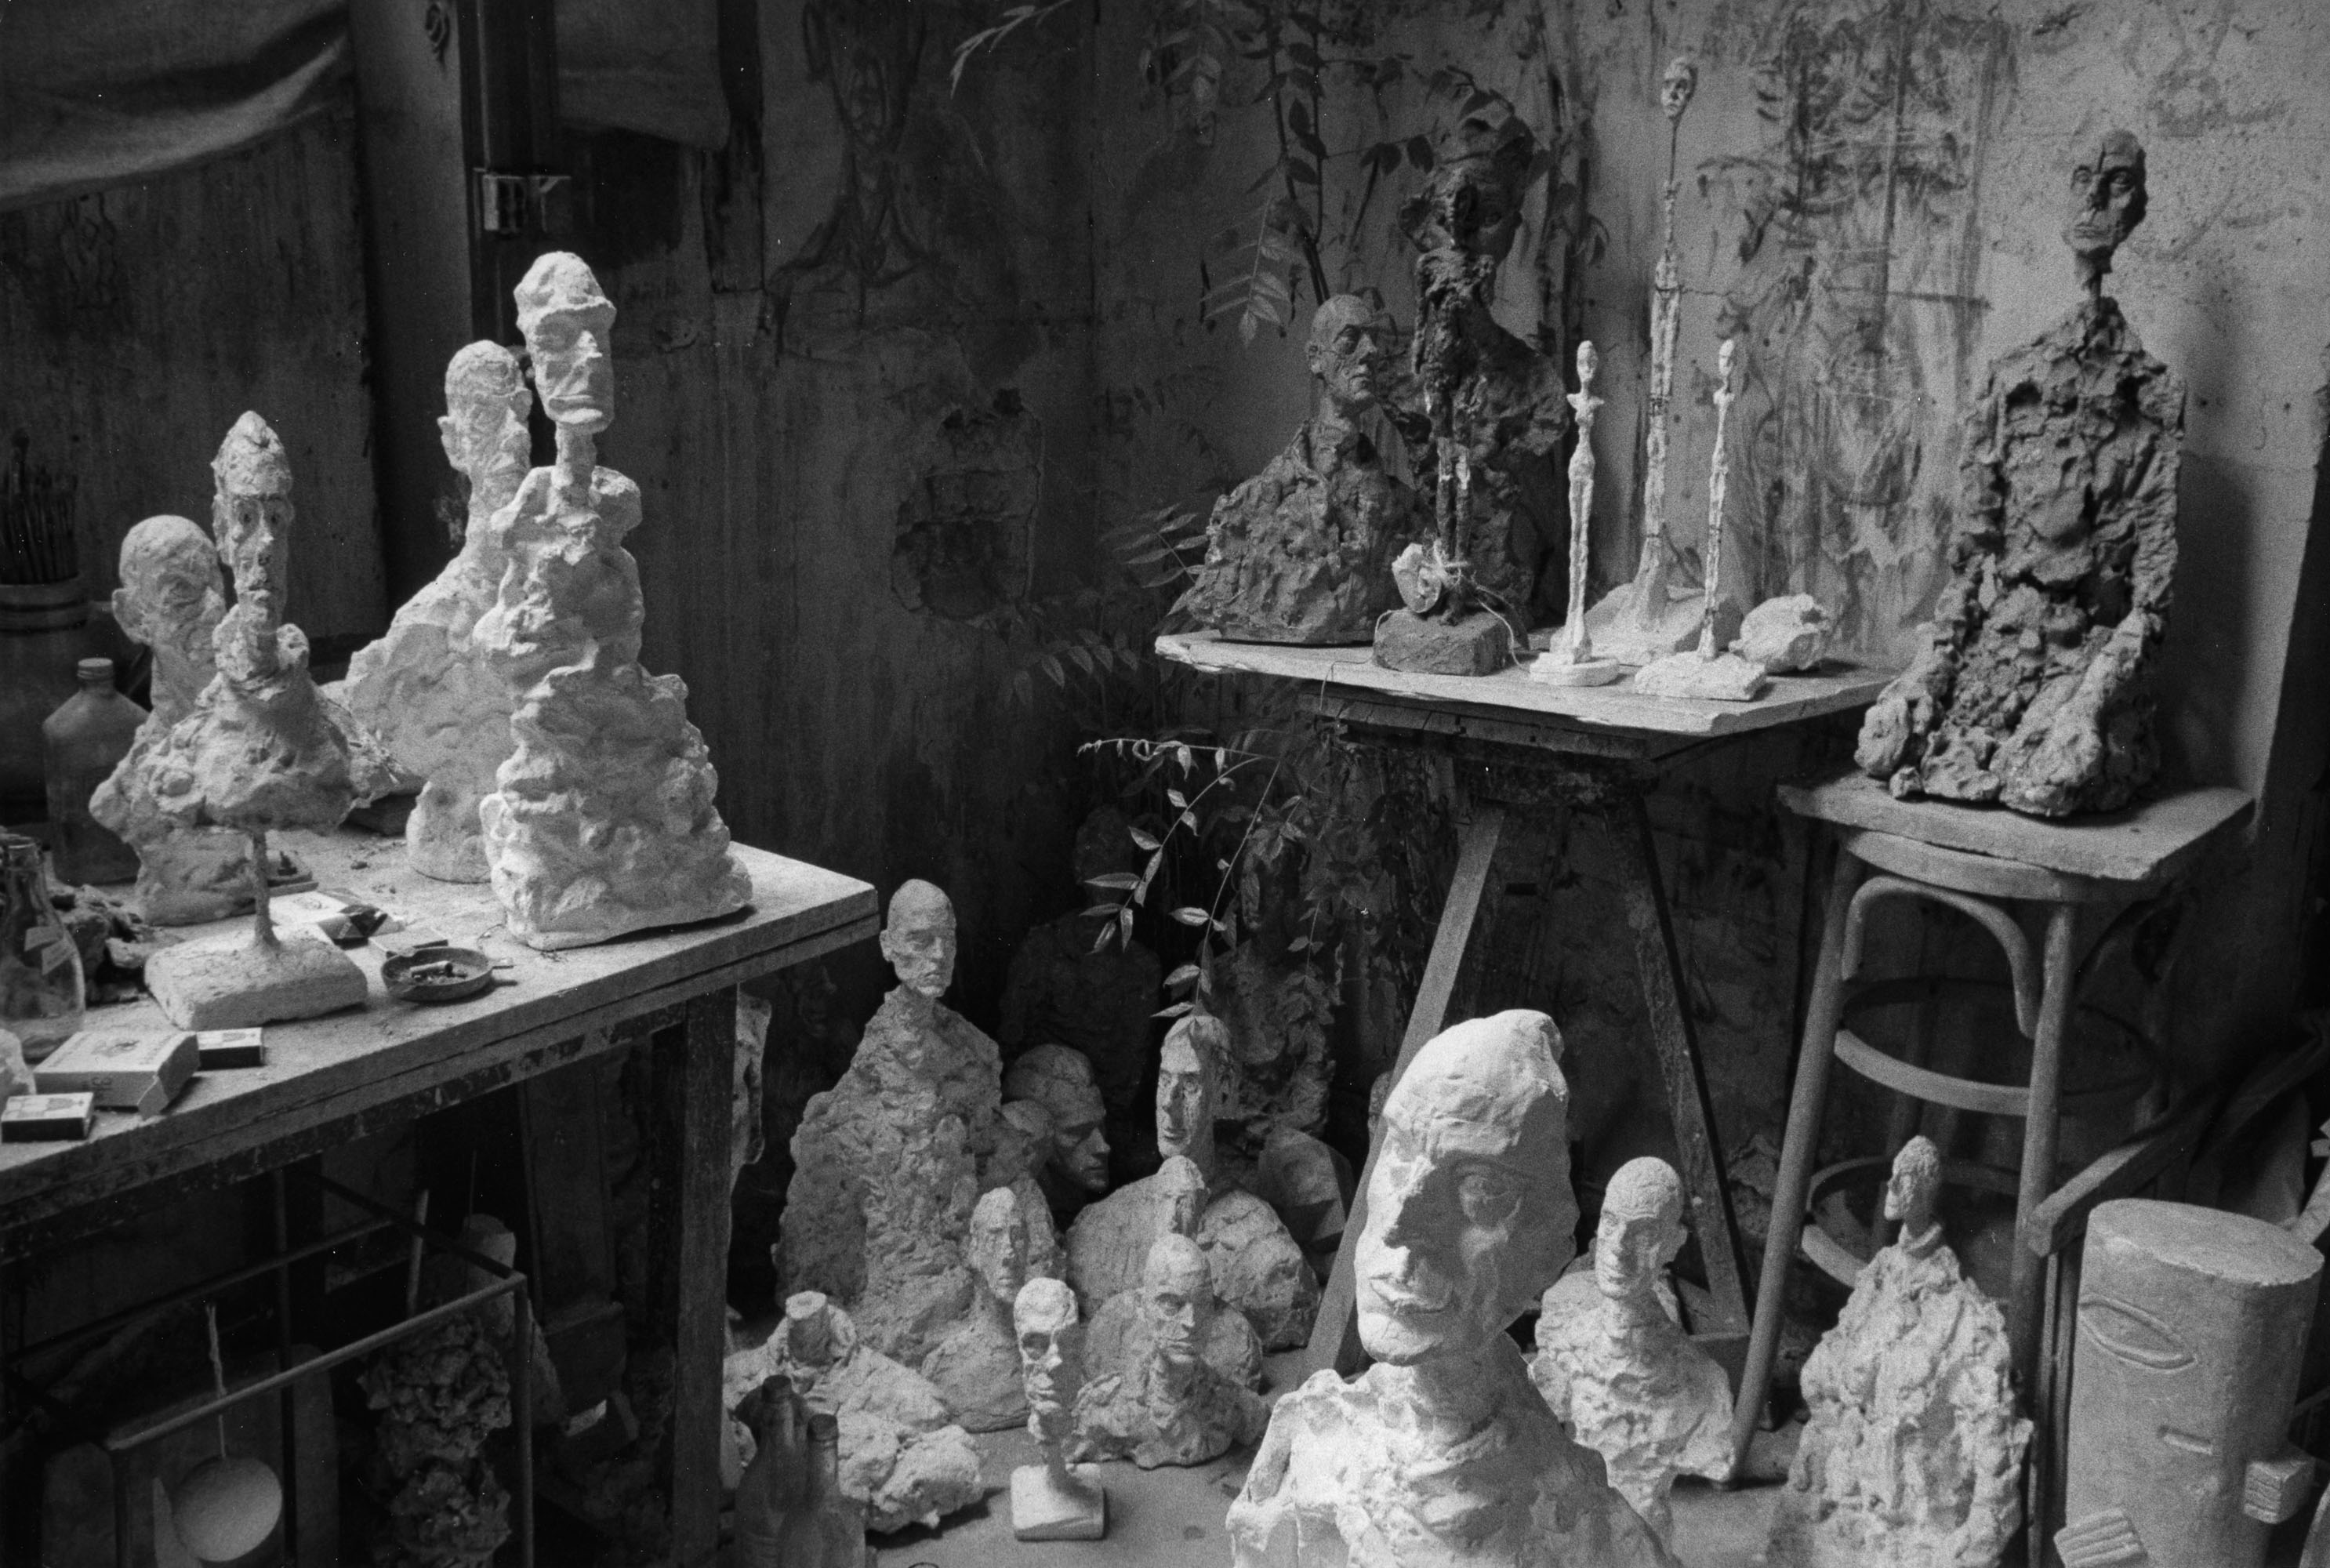 Giacometti's Final Works